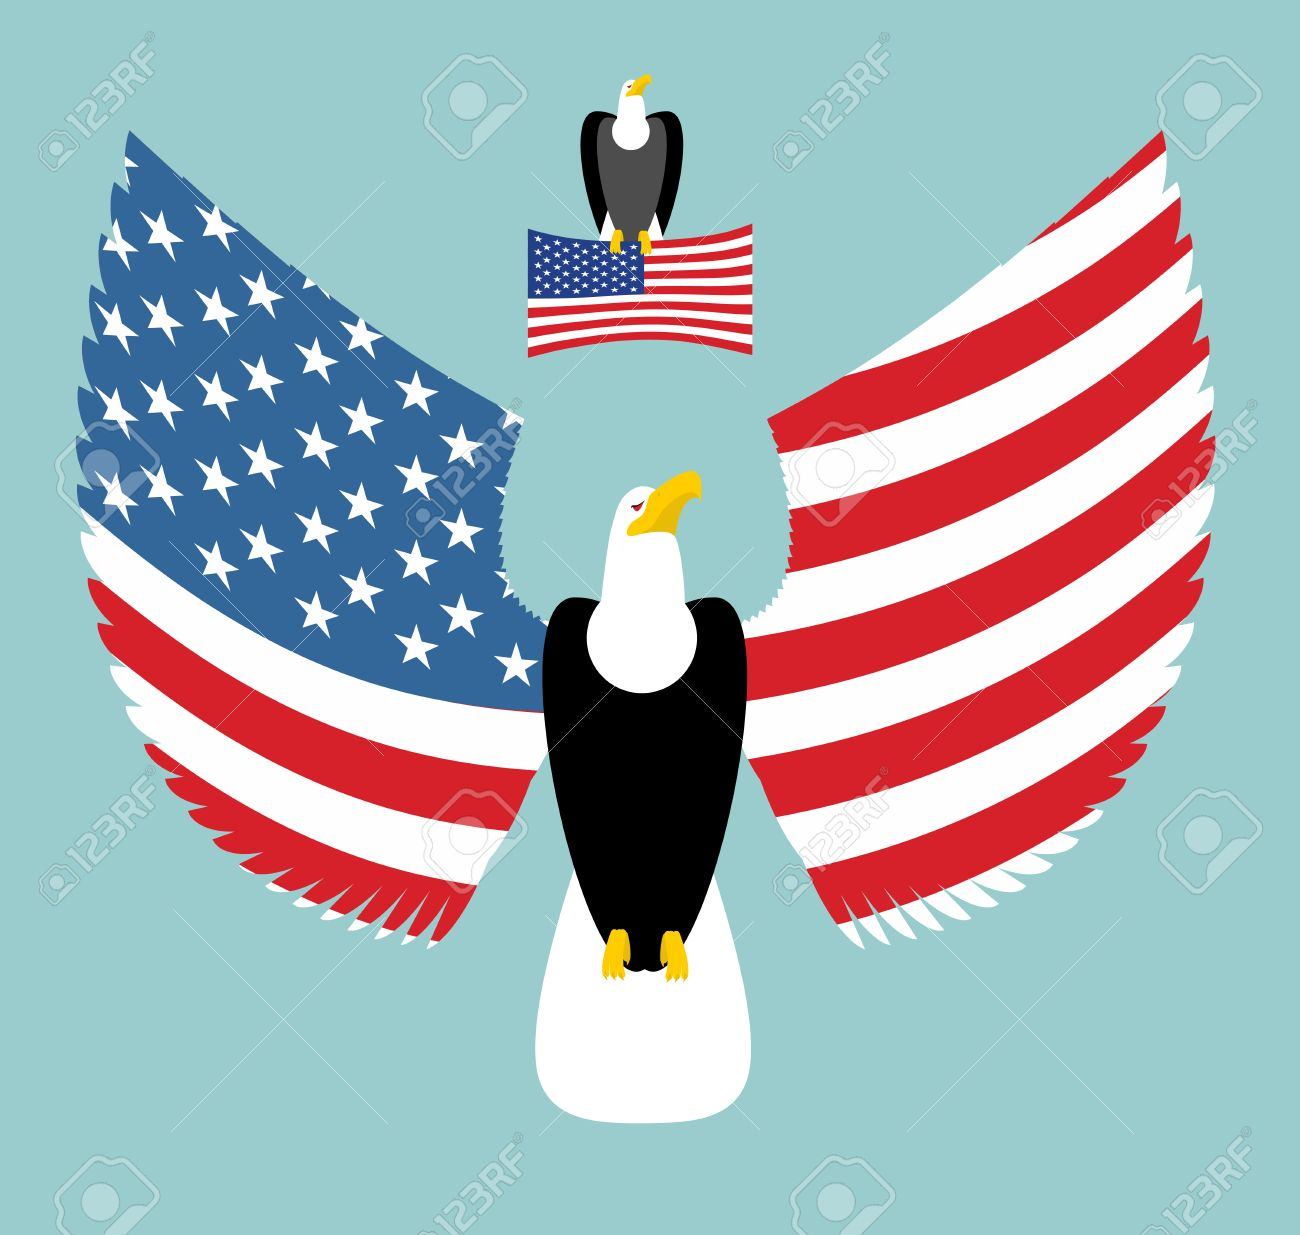 American eagle most powerful bird and us flag emblem for america most powerful bird and us flag emblem for america winged predator sciox Choice Image